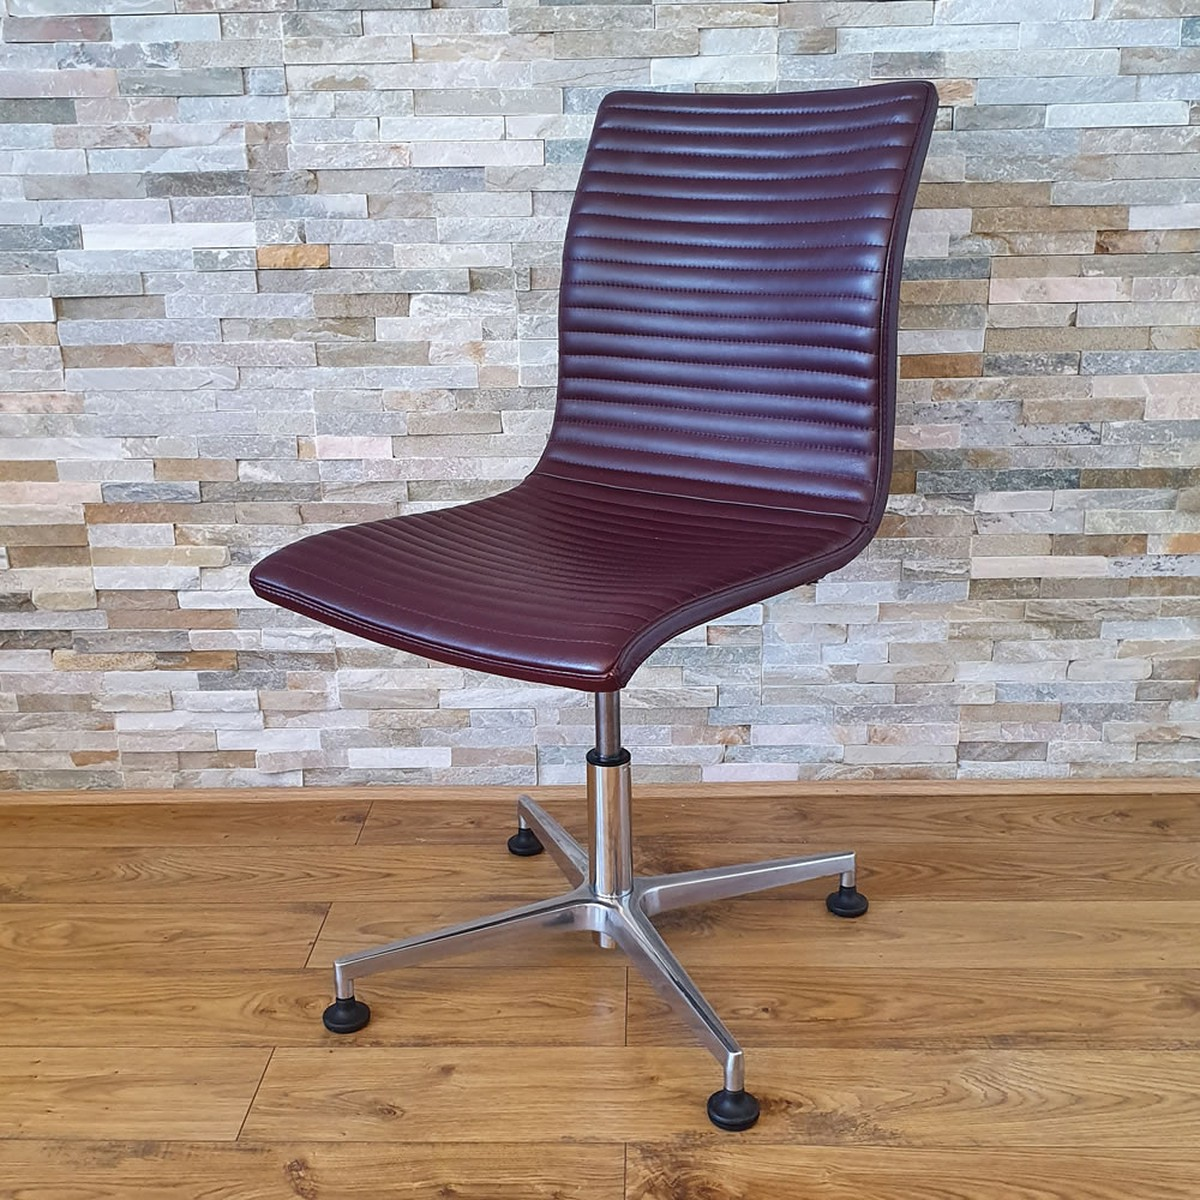 Designer Chairs Used 60x Used Designer Real Leather Desk Dressing Table Chair Product Code Mf3260 Peterborough Cambridgeshire